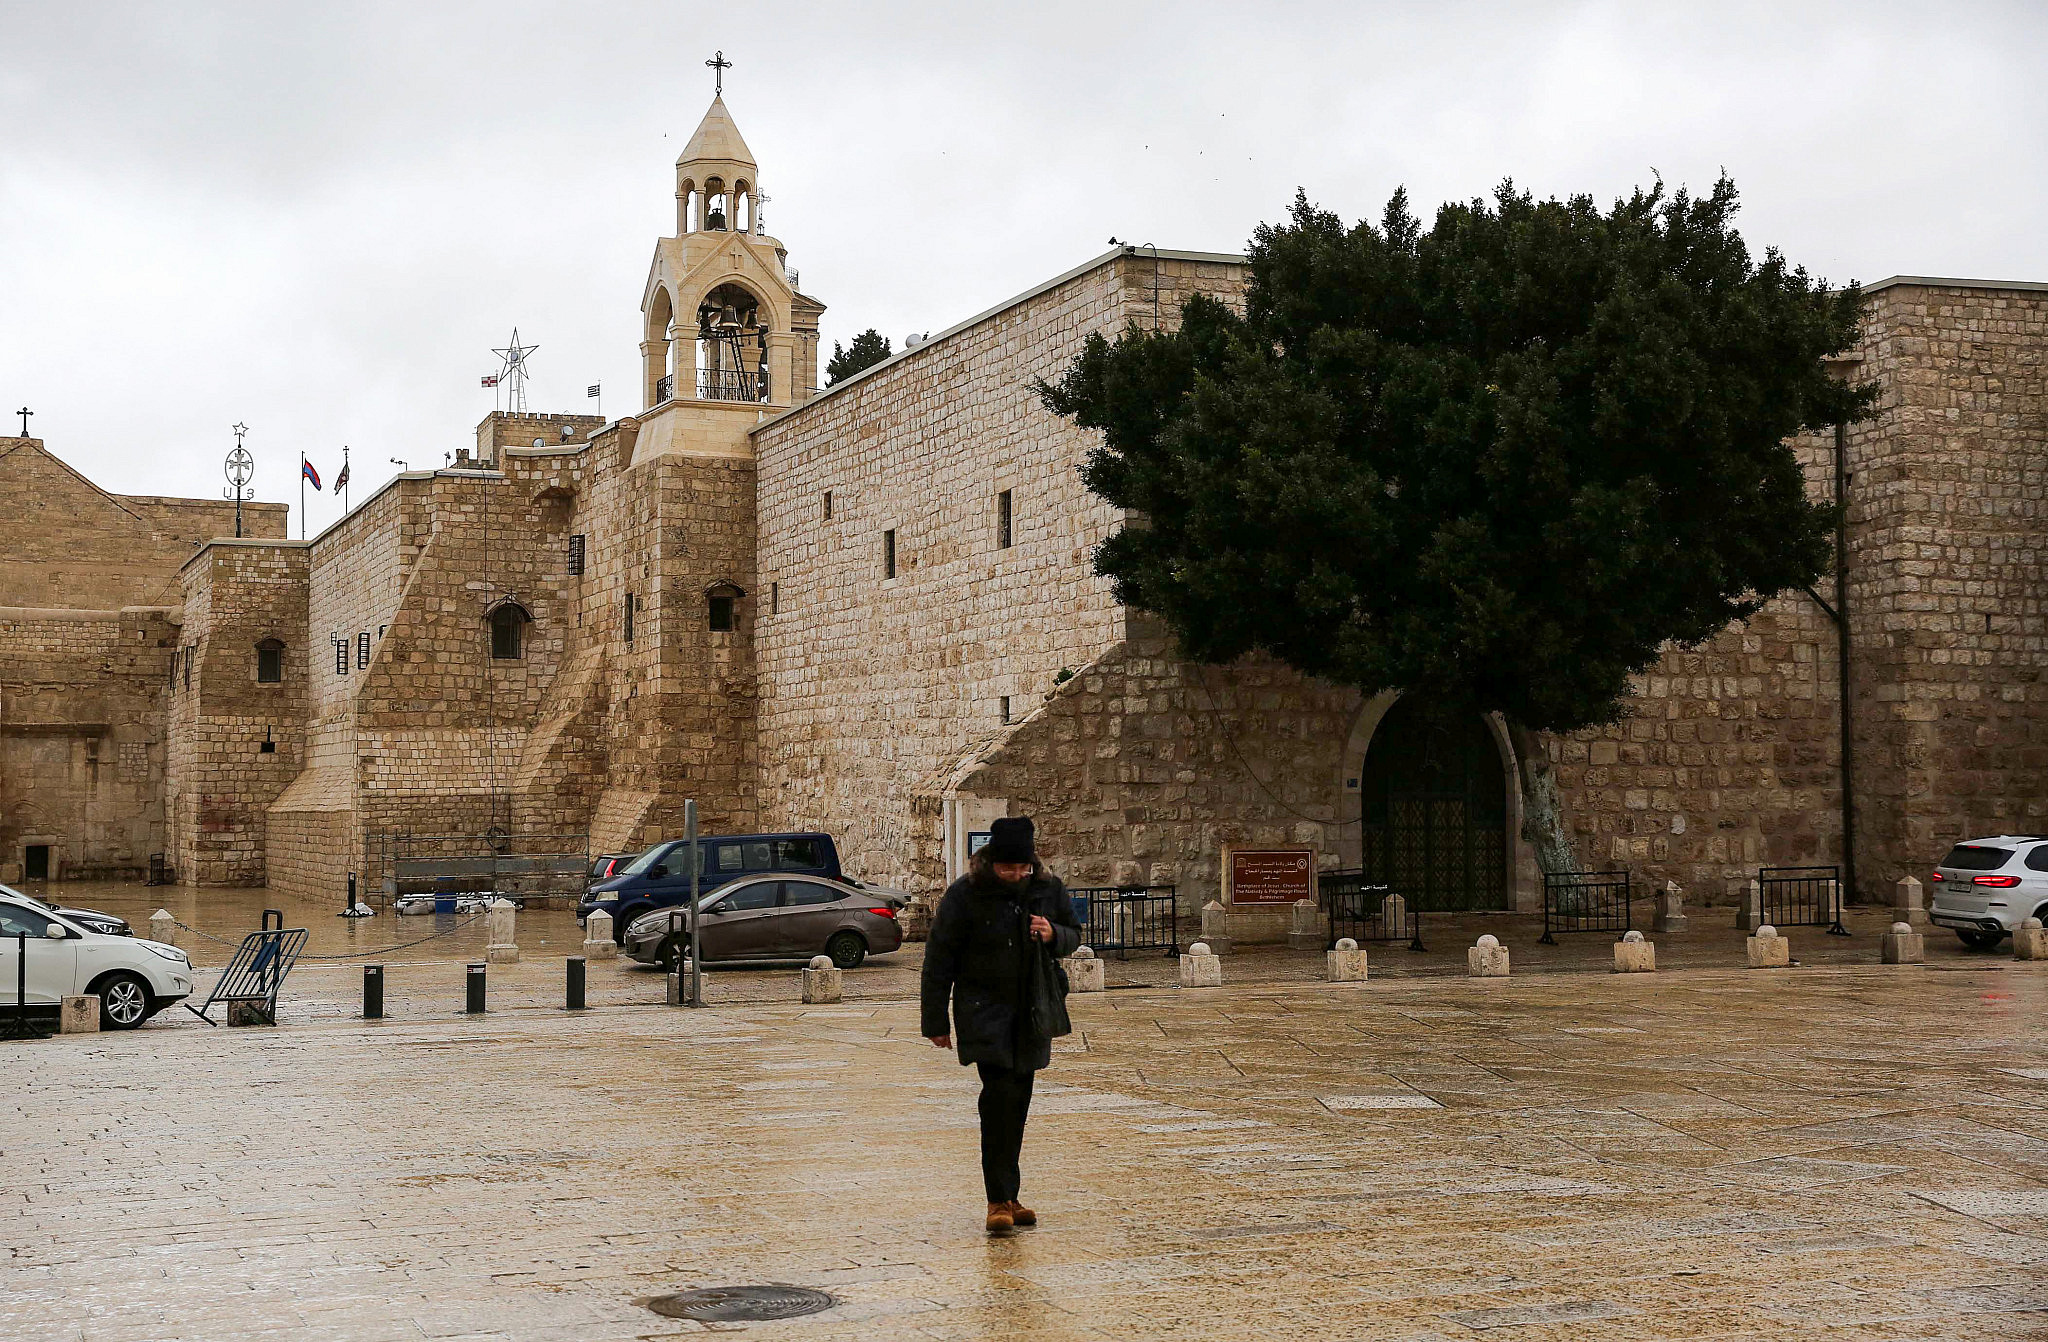 Palestinians walk outside the closed Church of the Nativity in the West Bank city of Bethlehem, March 5, 2020. (Wisam Hashlamoun/Flash90)